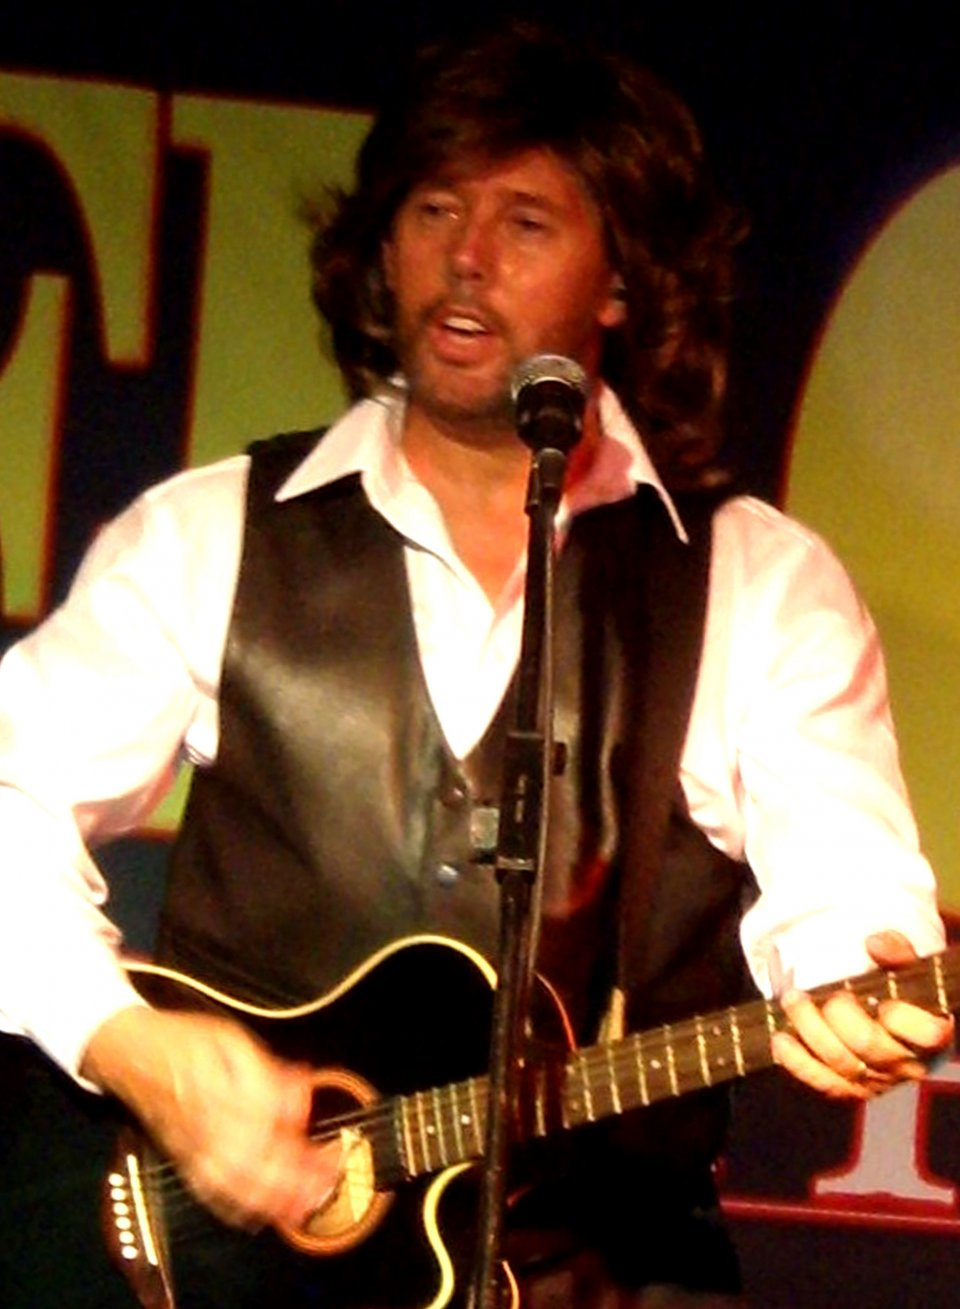 barry gibb 2016barry gibb in the now, barry gibb in the now скачать, barry gibb 2016, barry gibb talk show, barry gibb michael jackson, barry gibb grease, barry gibb vocal range, barry gibb mp3, barry gibb - shine shine, barry gibb - now voyager, barry gibb youtube, barry gibb emotion, barry gibb new album, barry gibb and linda gray, barry gibb in the now review, barry gibb heartbreaker, barry gibb the kid's no good, barry gibb mp3 download, barry gibb songs, barry gibb rides a roller coaster